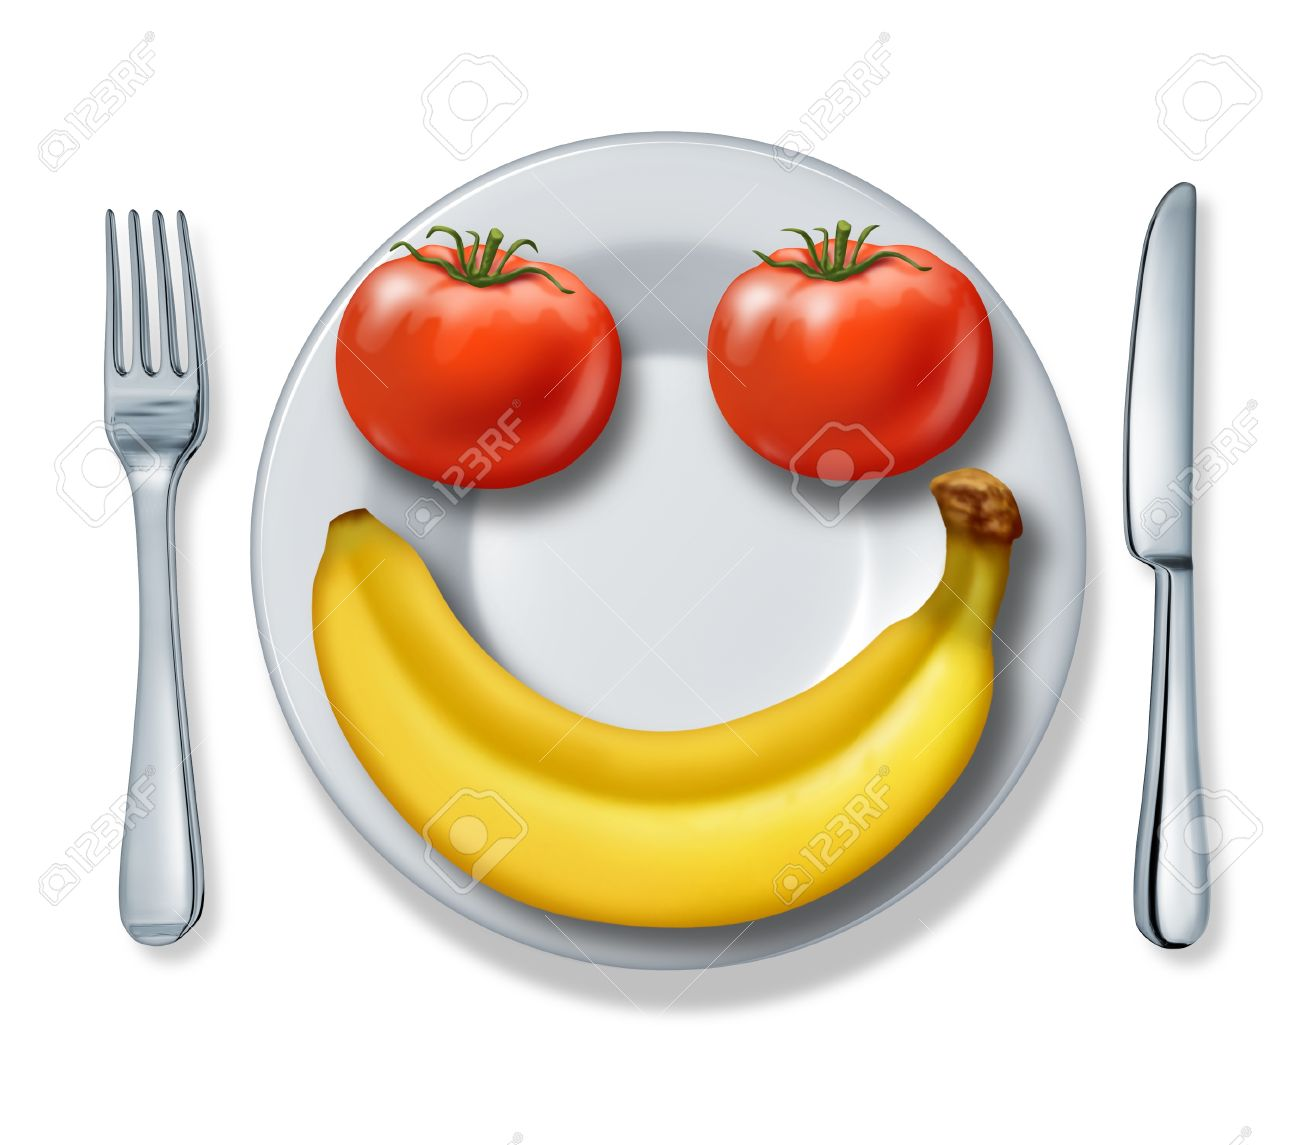 Eating and health - Healthy Eating And Health Diet With A Dinner Plate Fork And Knife And Tomatoes And A